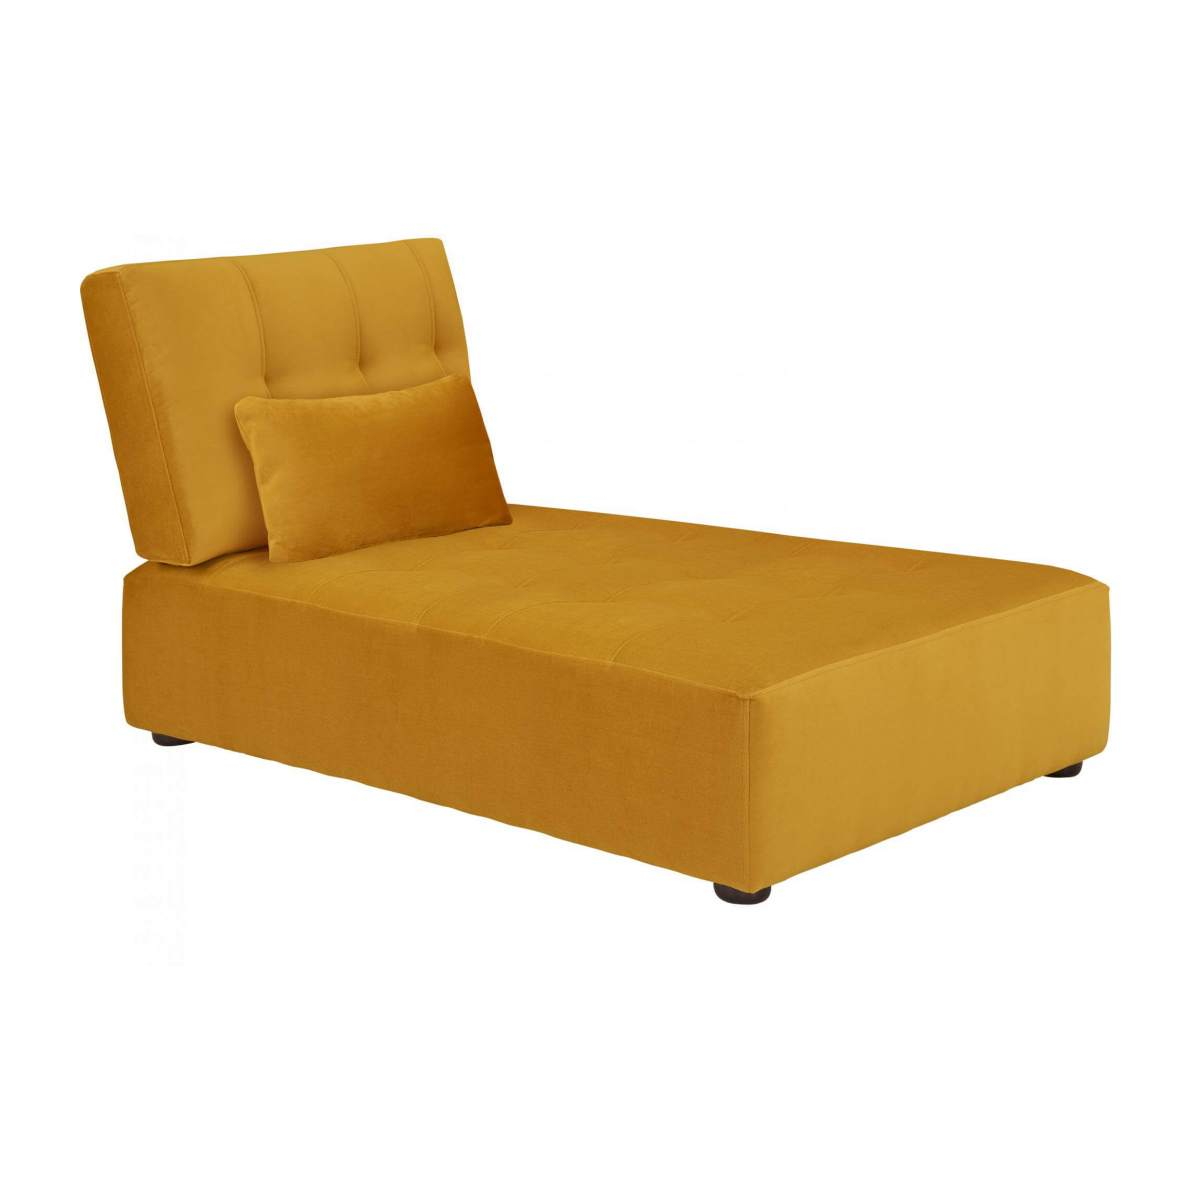 Chaiselongue aus Samt - Senfgelb n°2